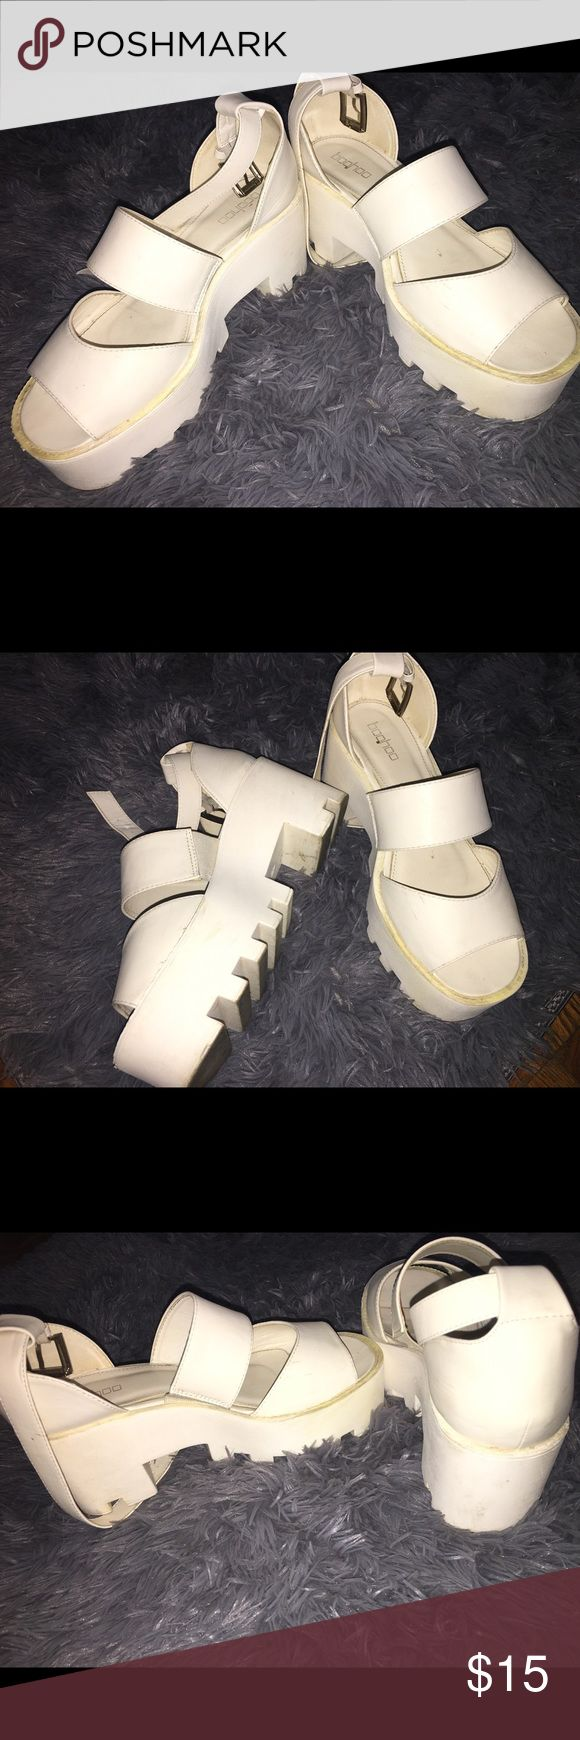 White Platform Shoes These are used white platform shoes. Great for the spring! Boohoo Shoes Platforms